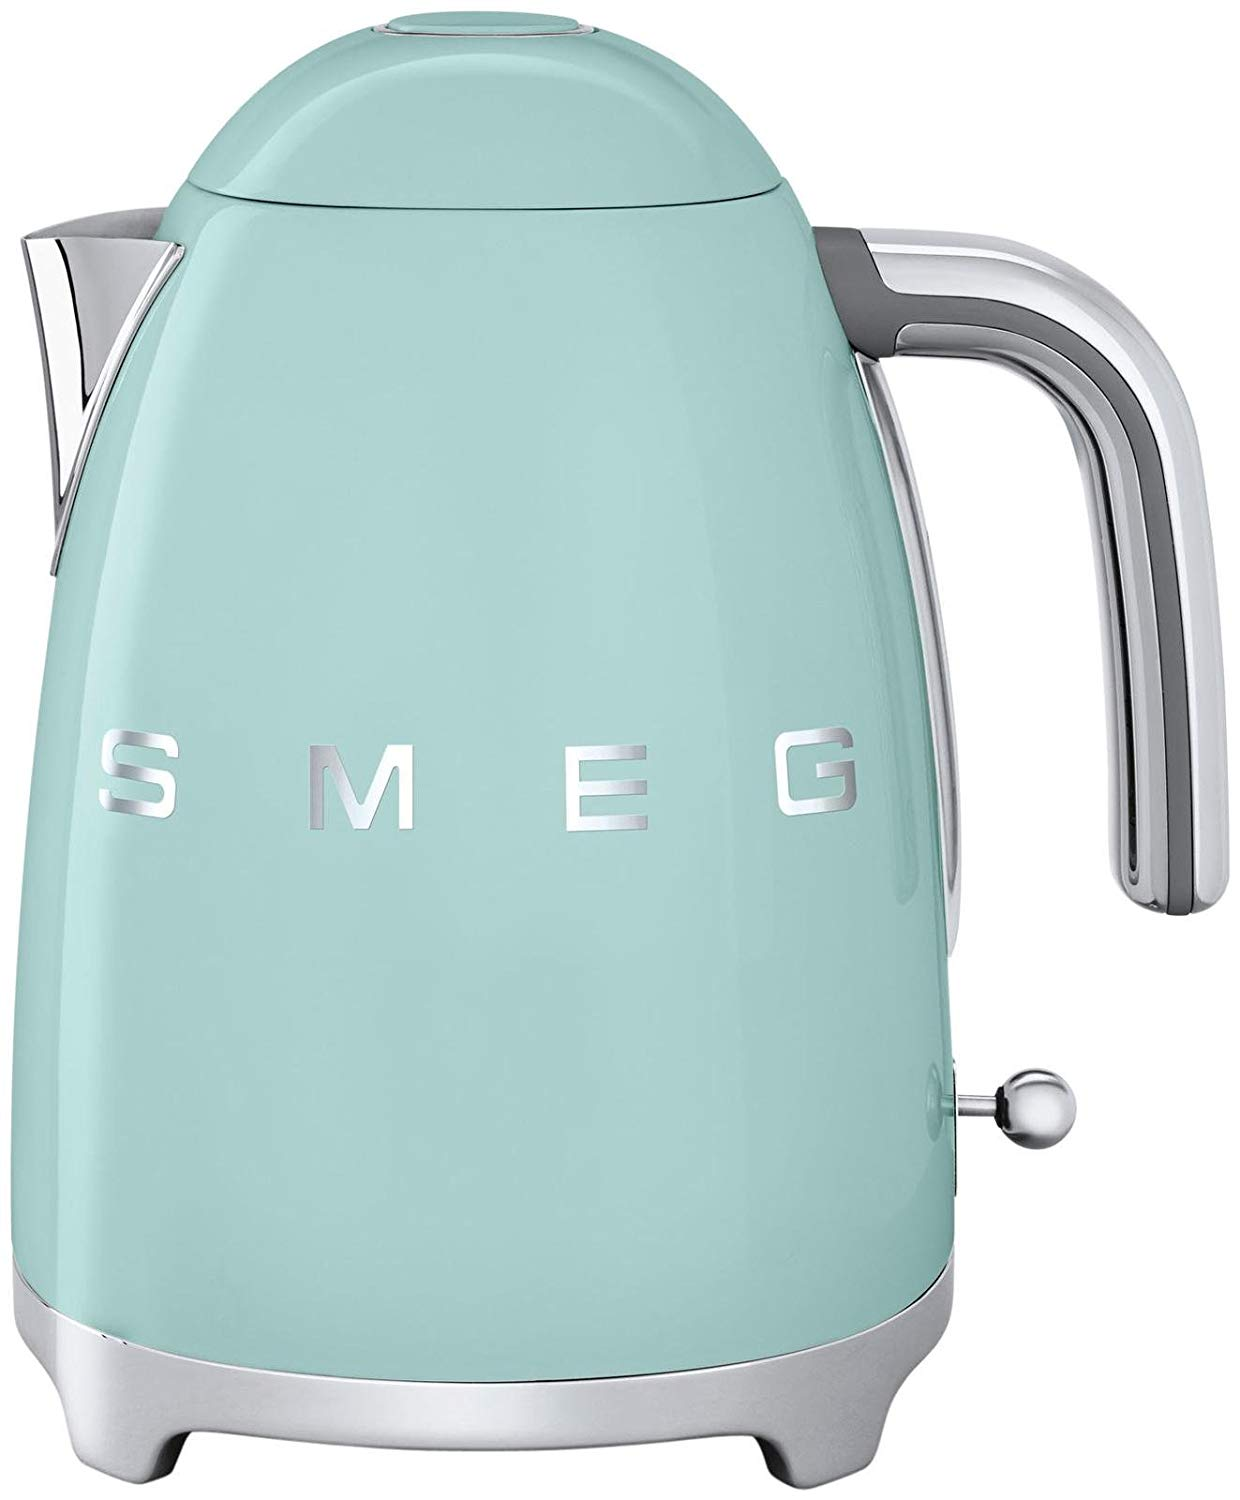 home decor gift ideas kettle